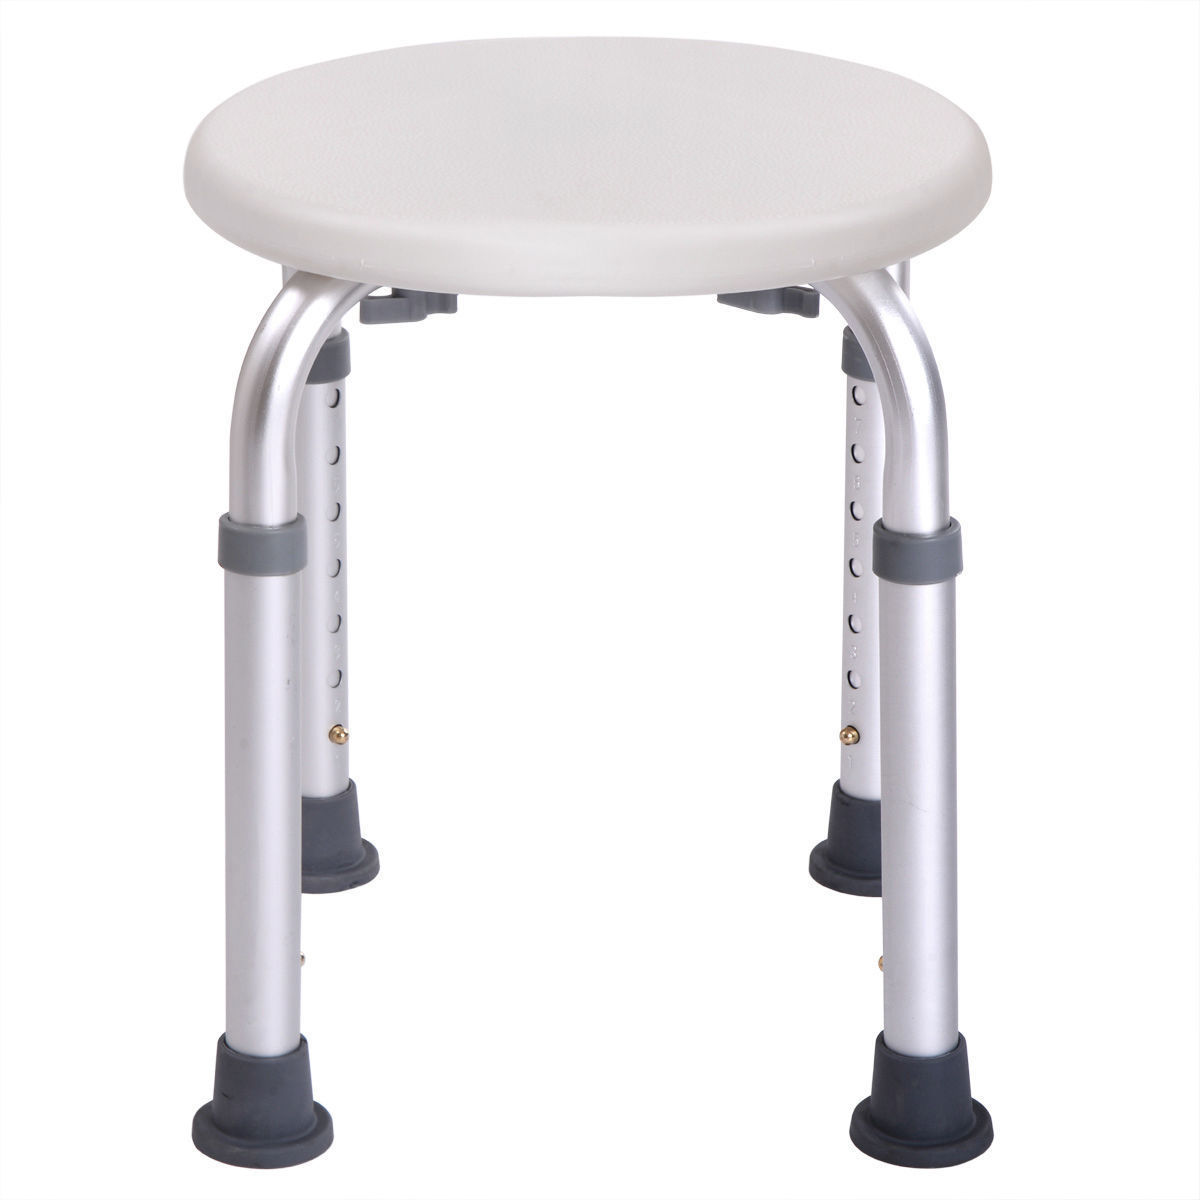 Lazymoon 7 Height Medical Tool Free Assembly Adjustable Shower Stool Tub  Chair And Bathtub Seat